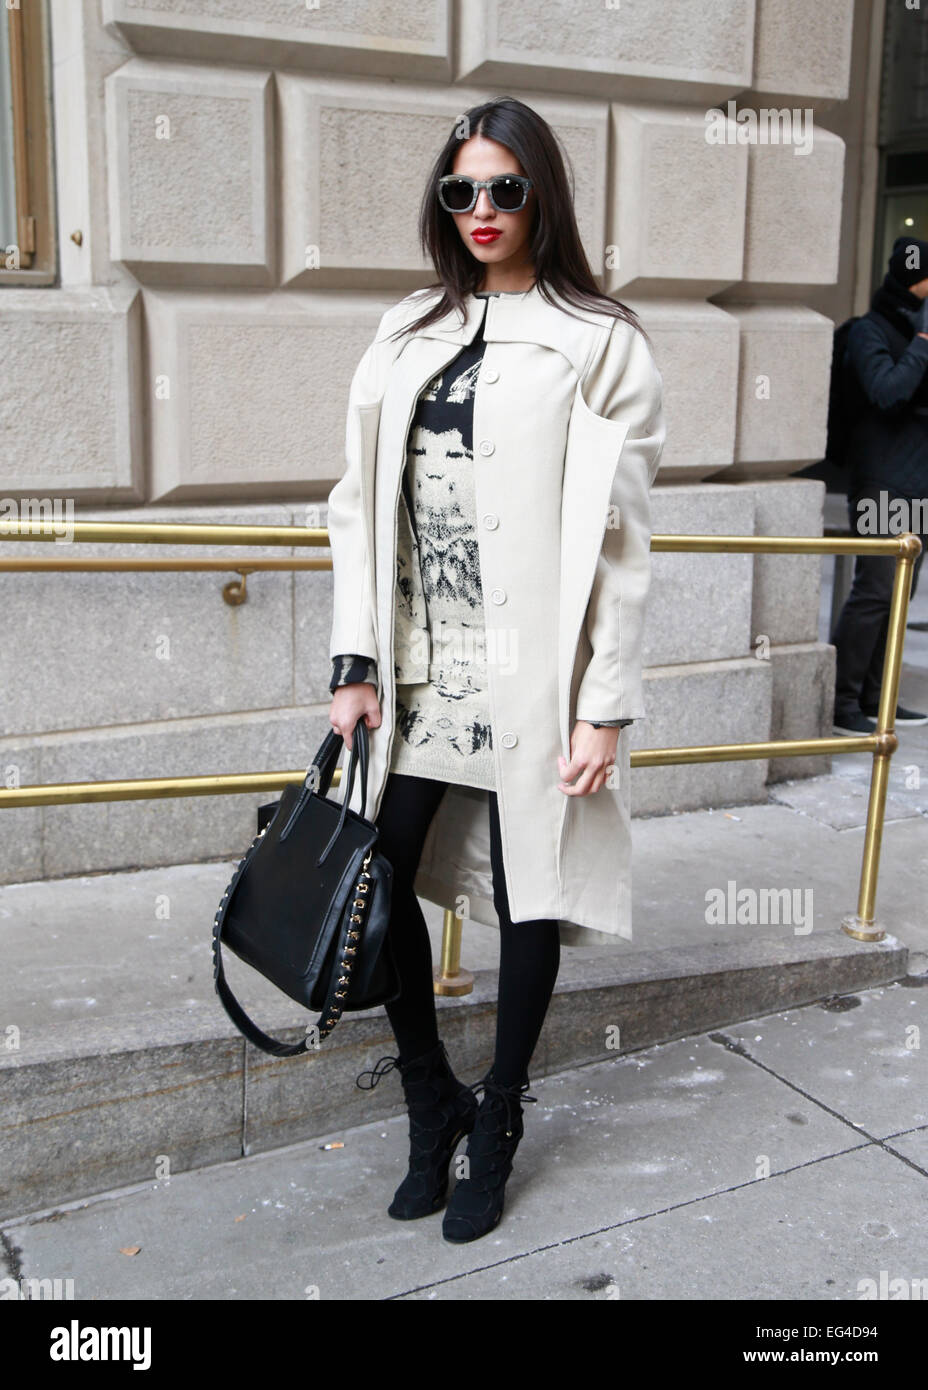 New York City, New York, USA. 15th February, 2015. Kayshle arriving at the Victoria Beckham runway show in New York Stock Photo